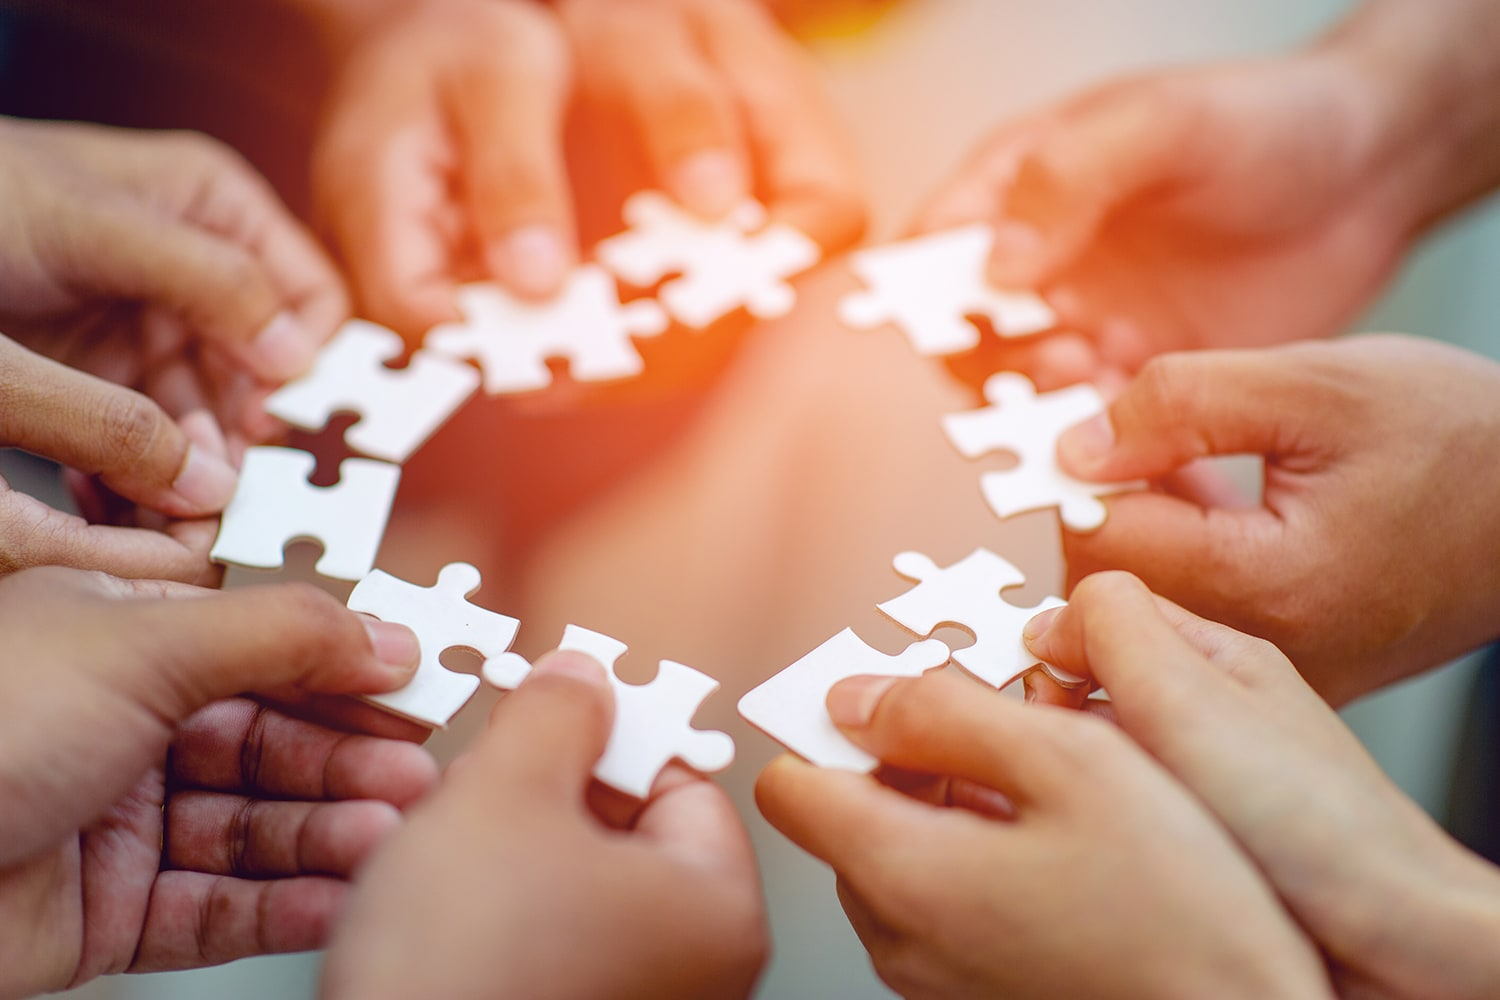 Hand holding jigsaw pieces